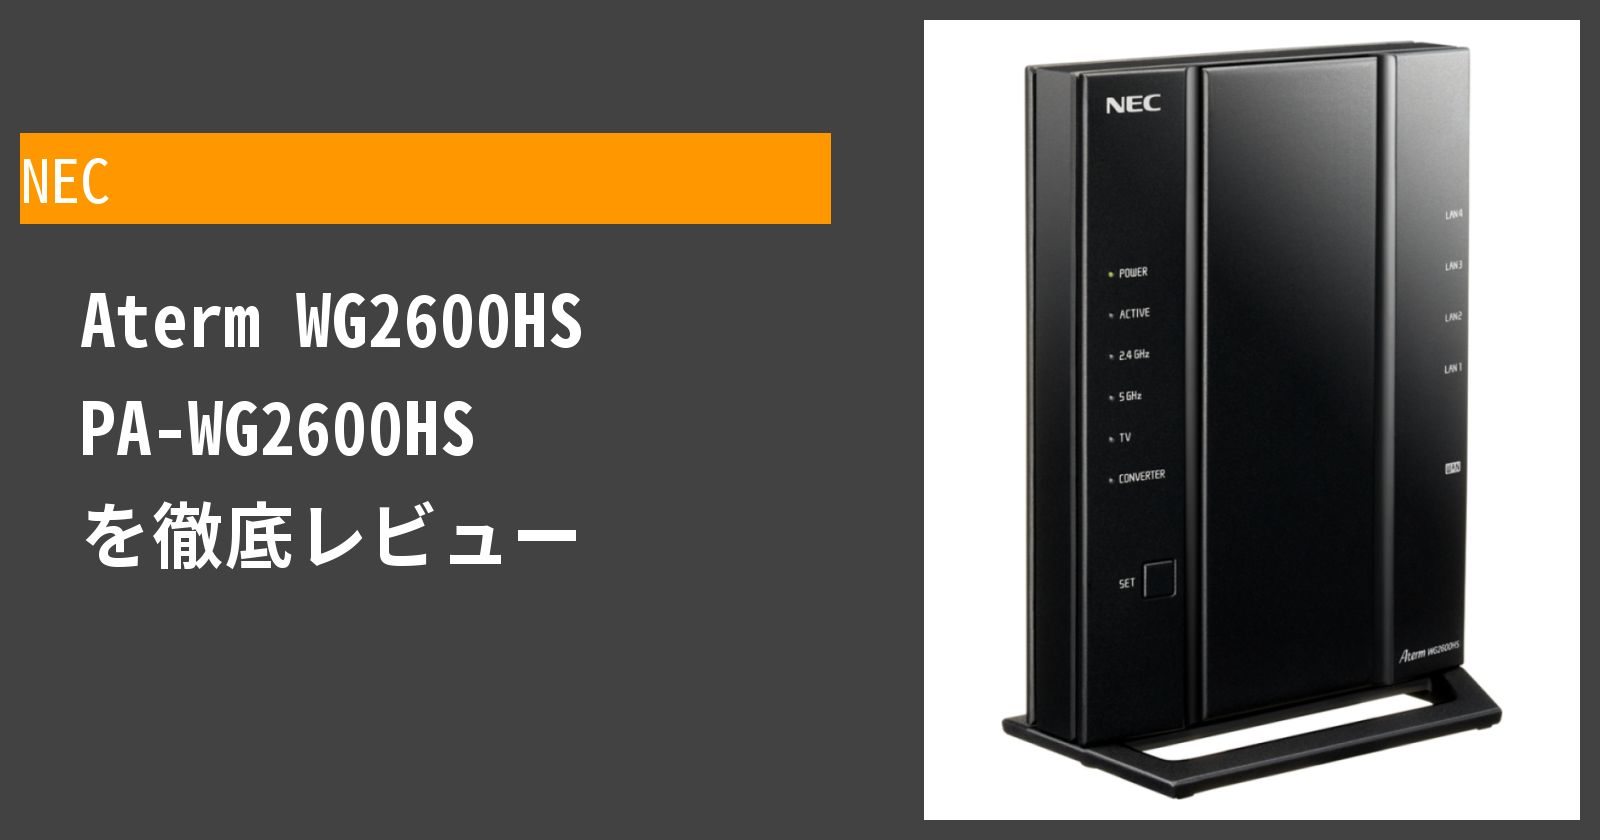 Aterm WG2600HS PA-WG2600HSを徹底評価